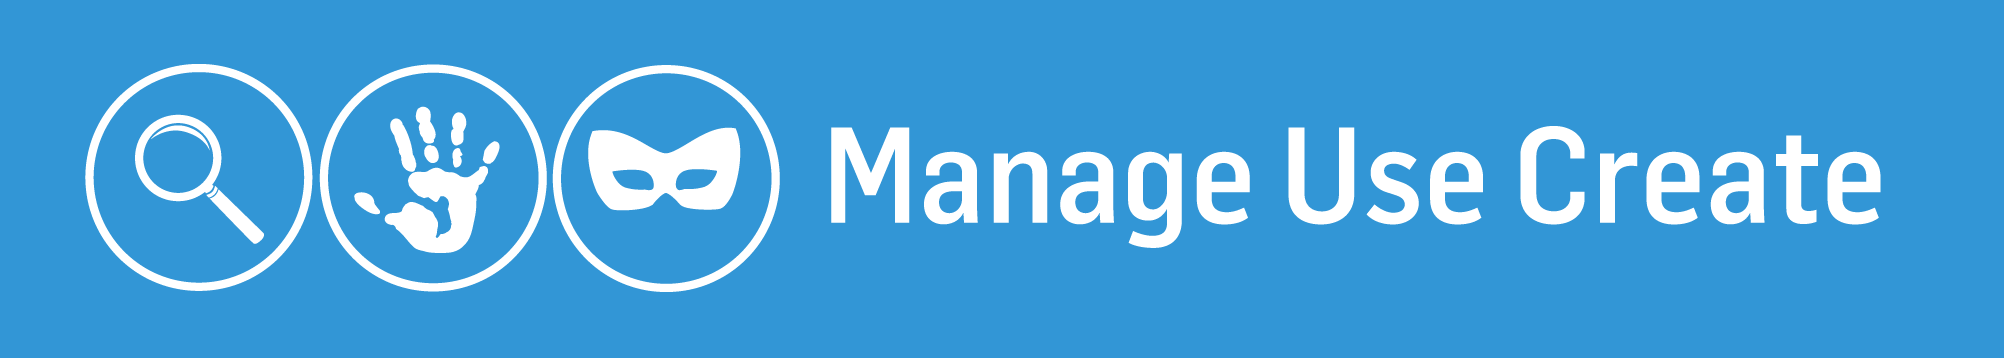 Manage Use Create